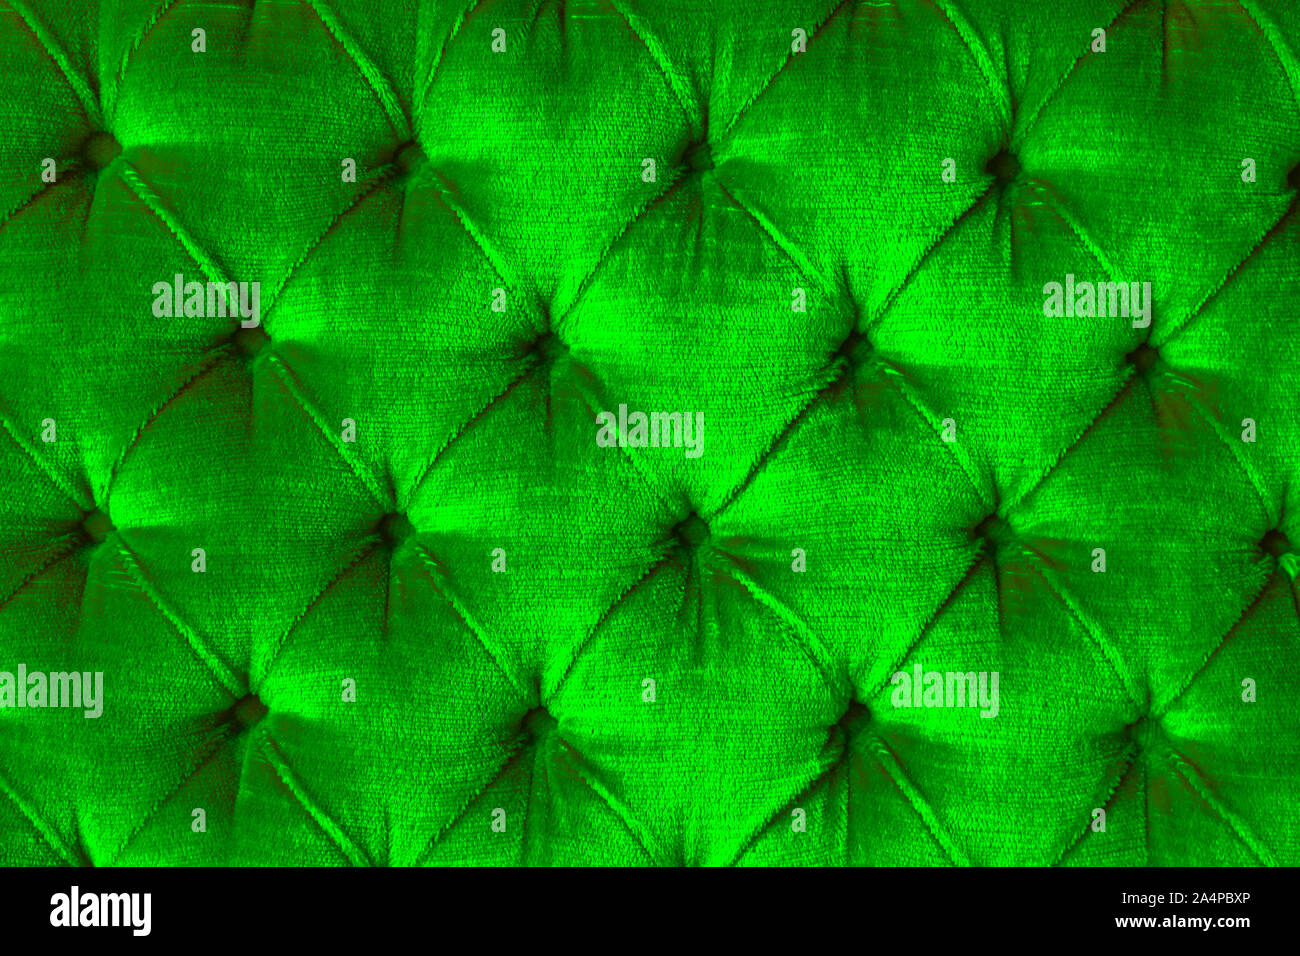 Green Velvet Texture High Resolution Stock Photography And Images Alamy